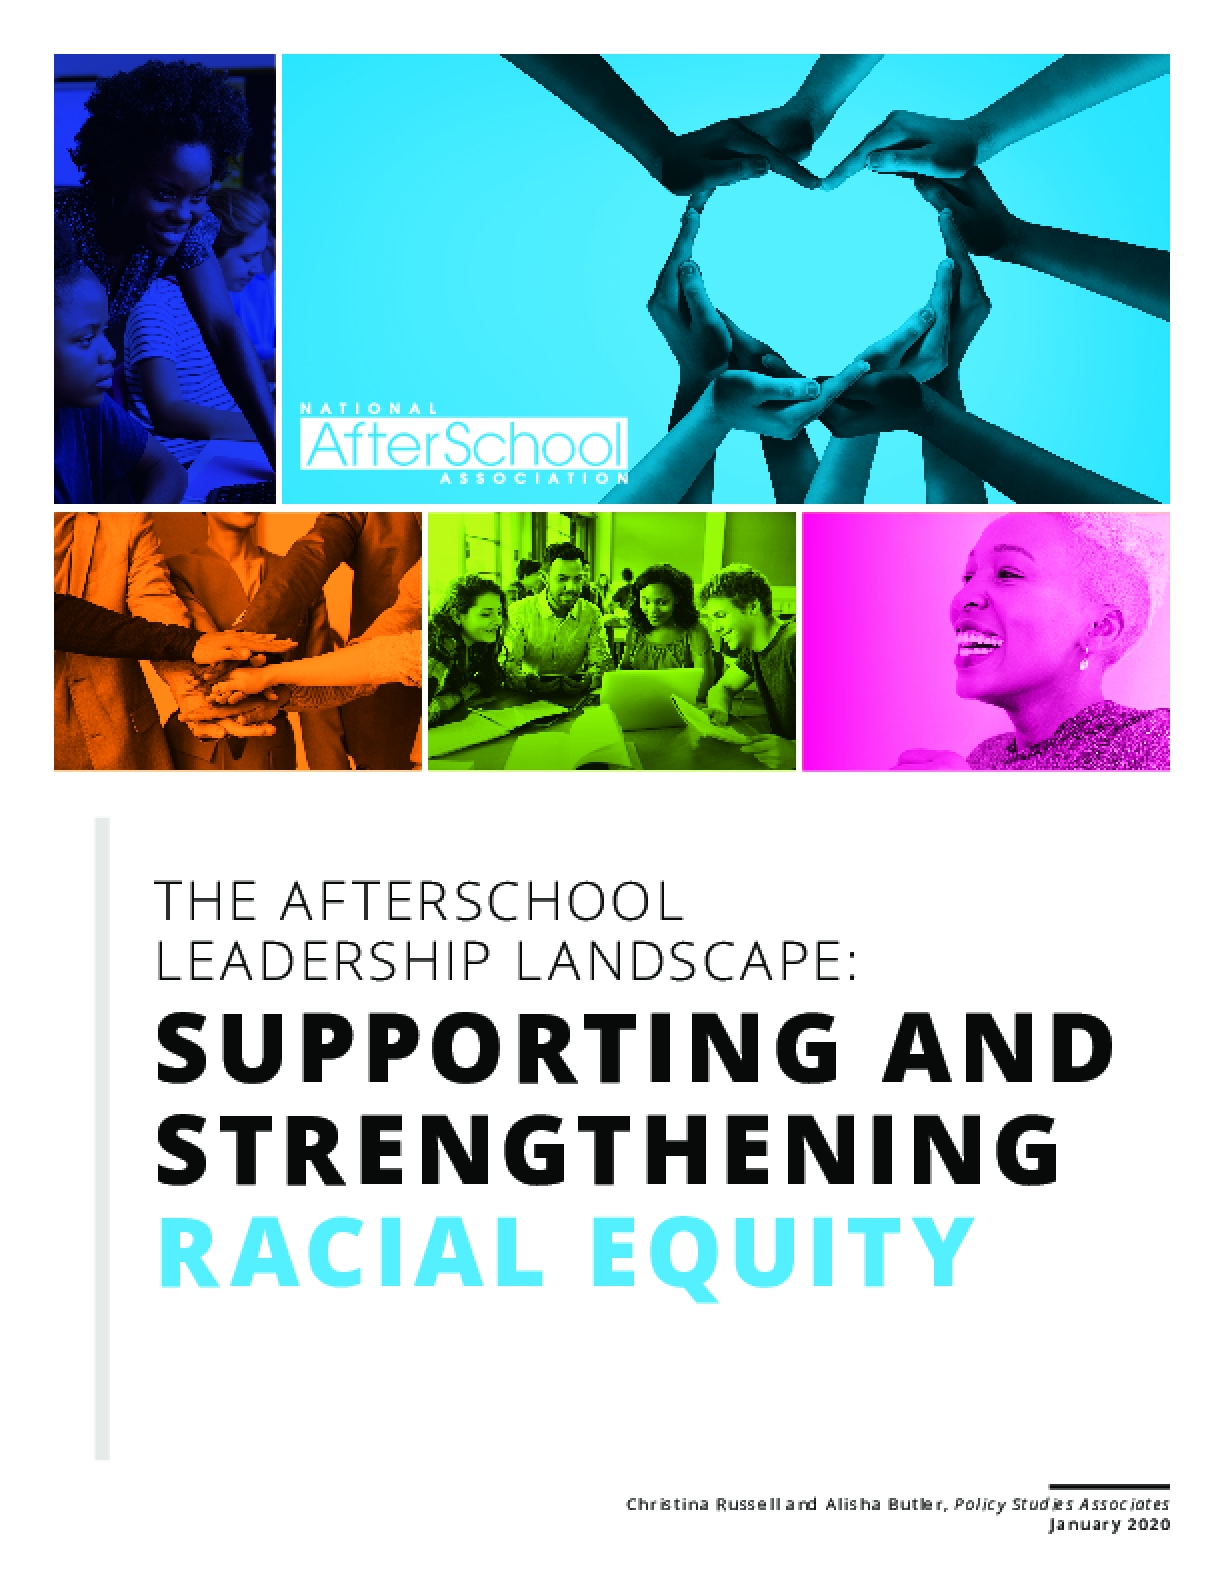 The Afterschool Leadership Landscape: Supporting and Strengthening Racial Equity